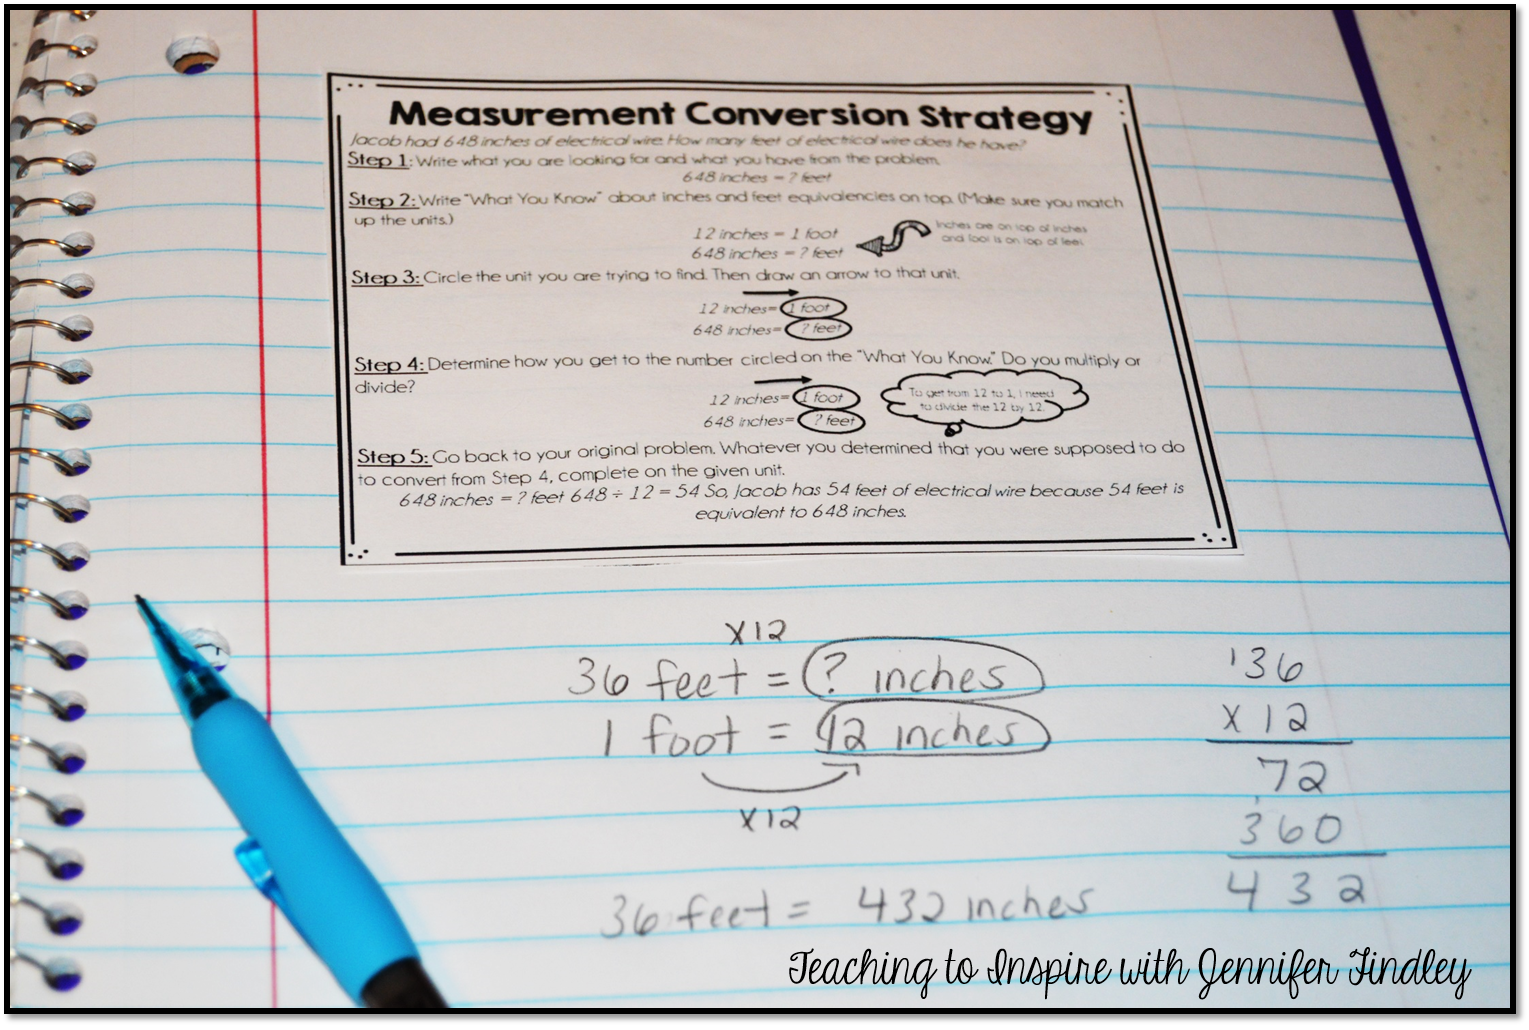 Measurement conversions for kids who just dont get it teaching to measurement strategy inb geenschuldenfo Image collections